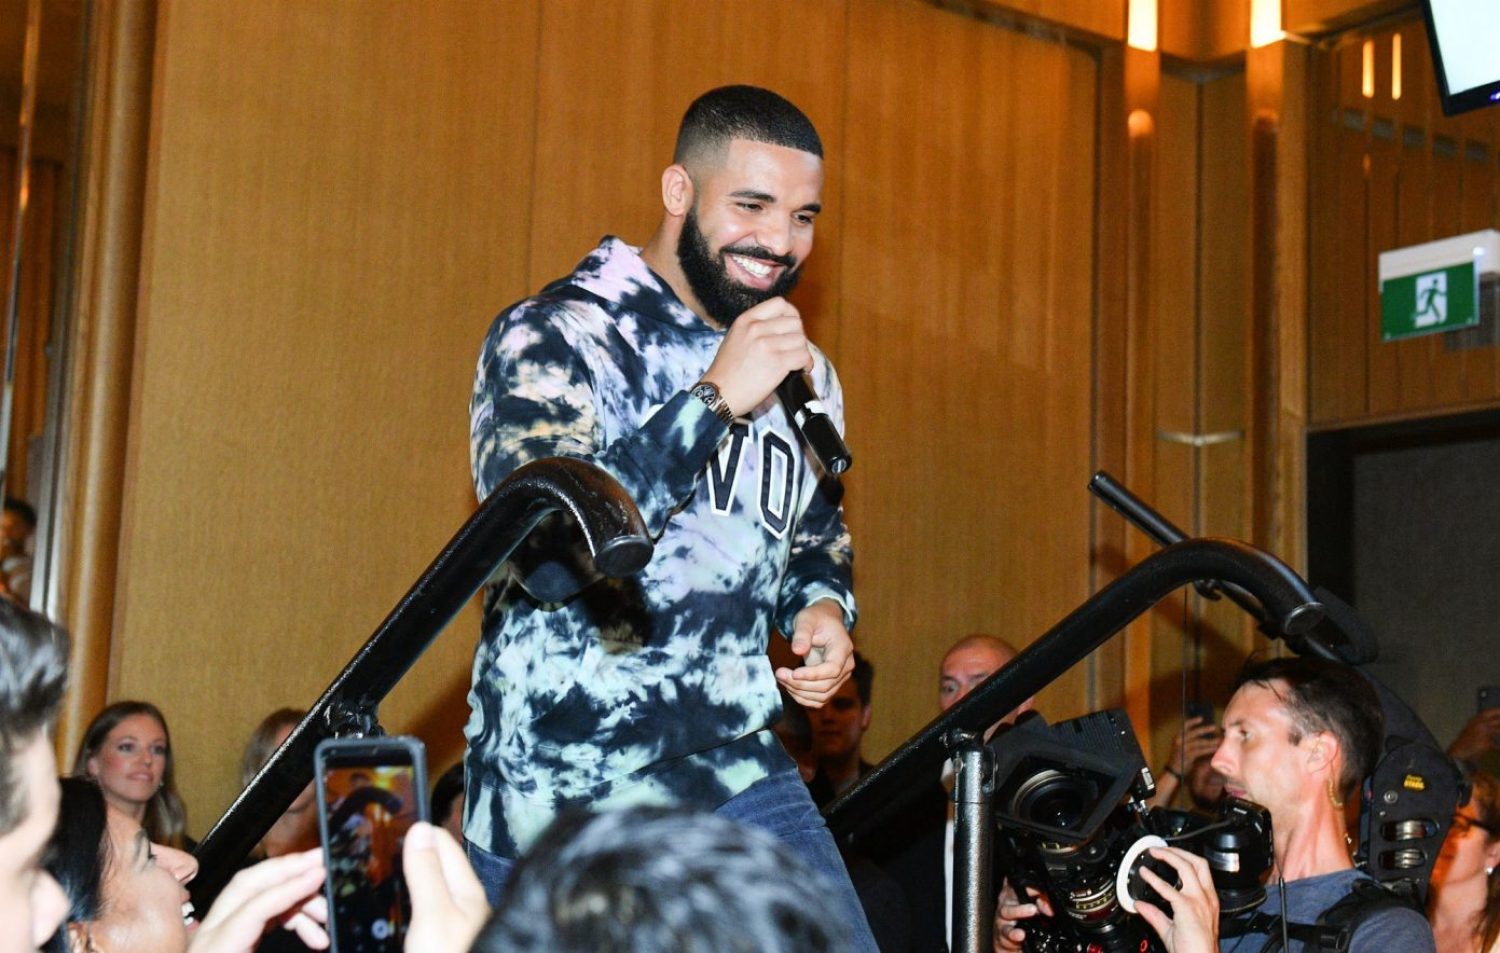 Drake has helped a Toronoto rapper pay off his debt and double his savings